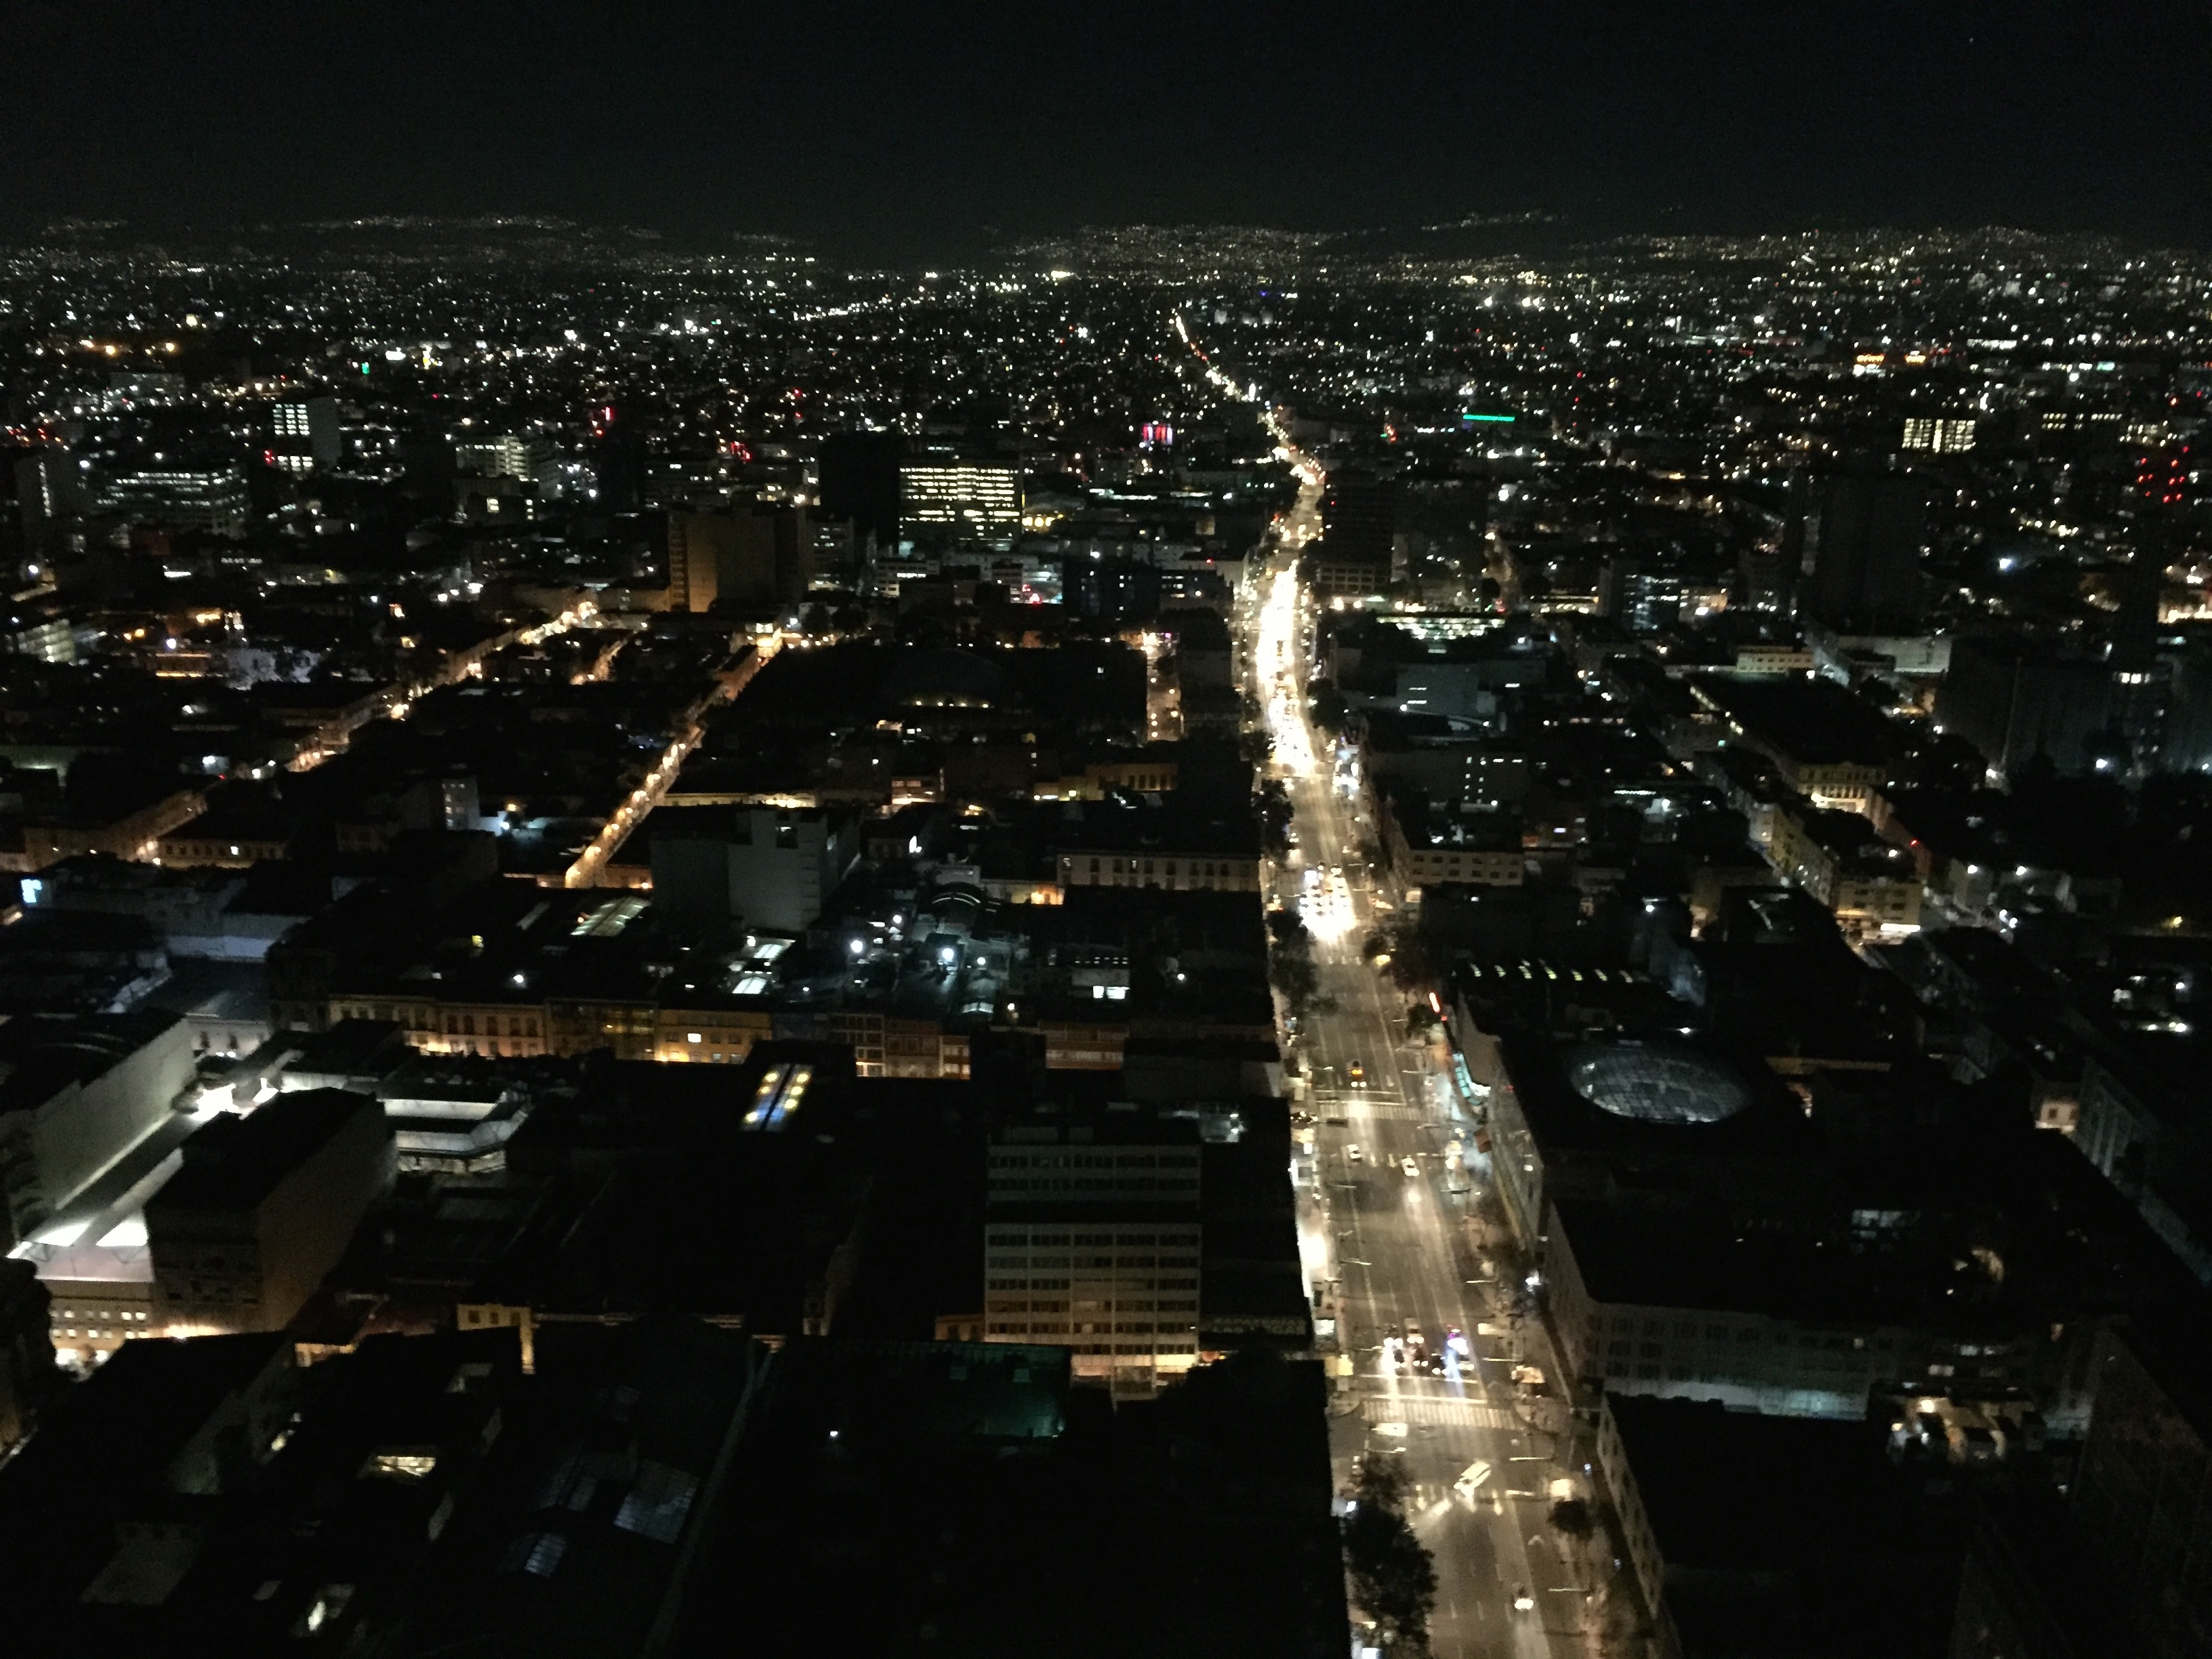 Mexico City at night.